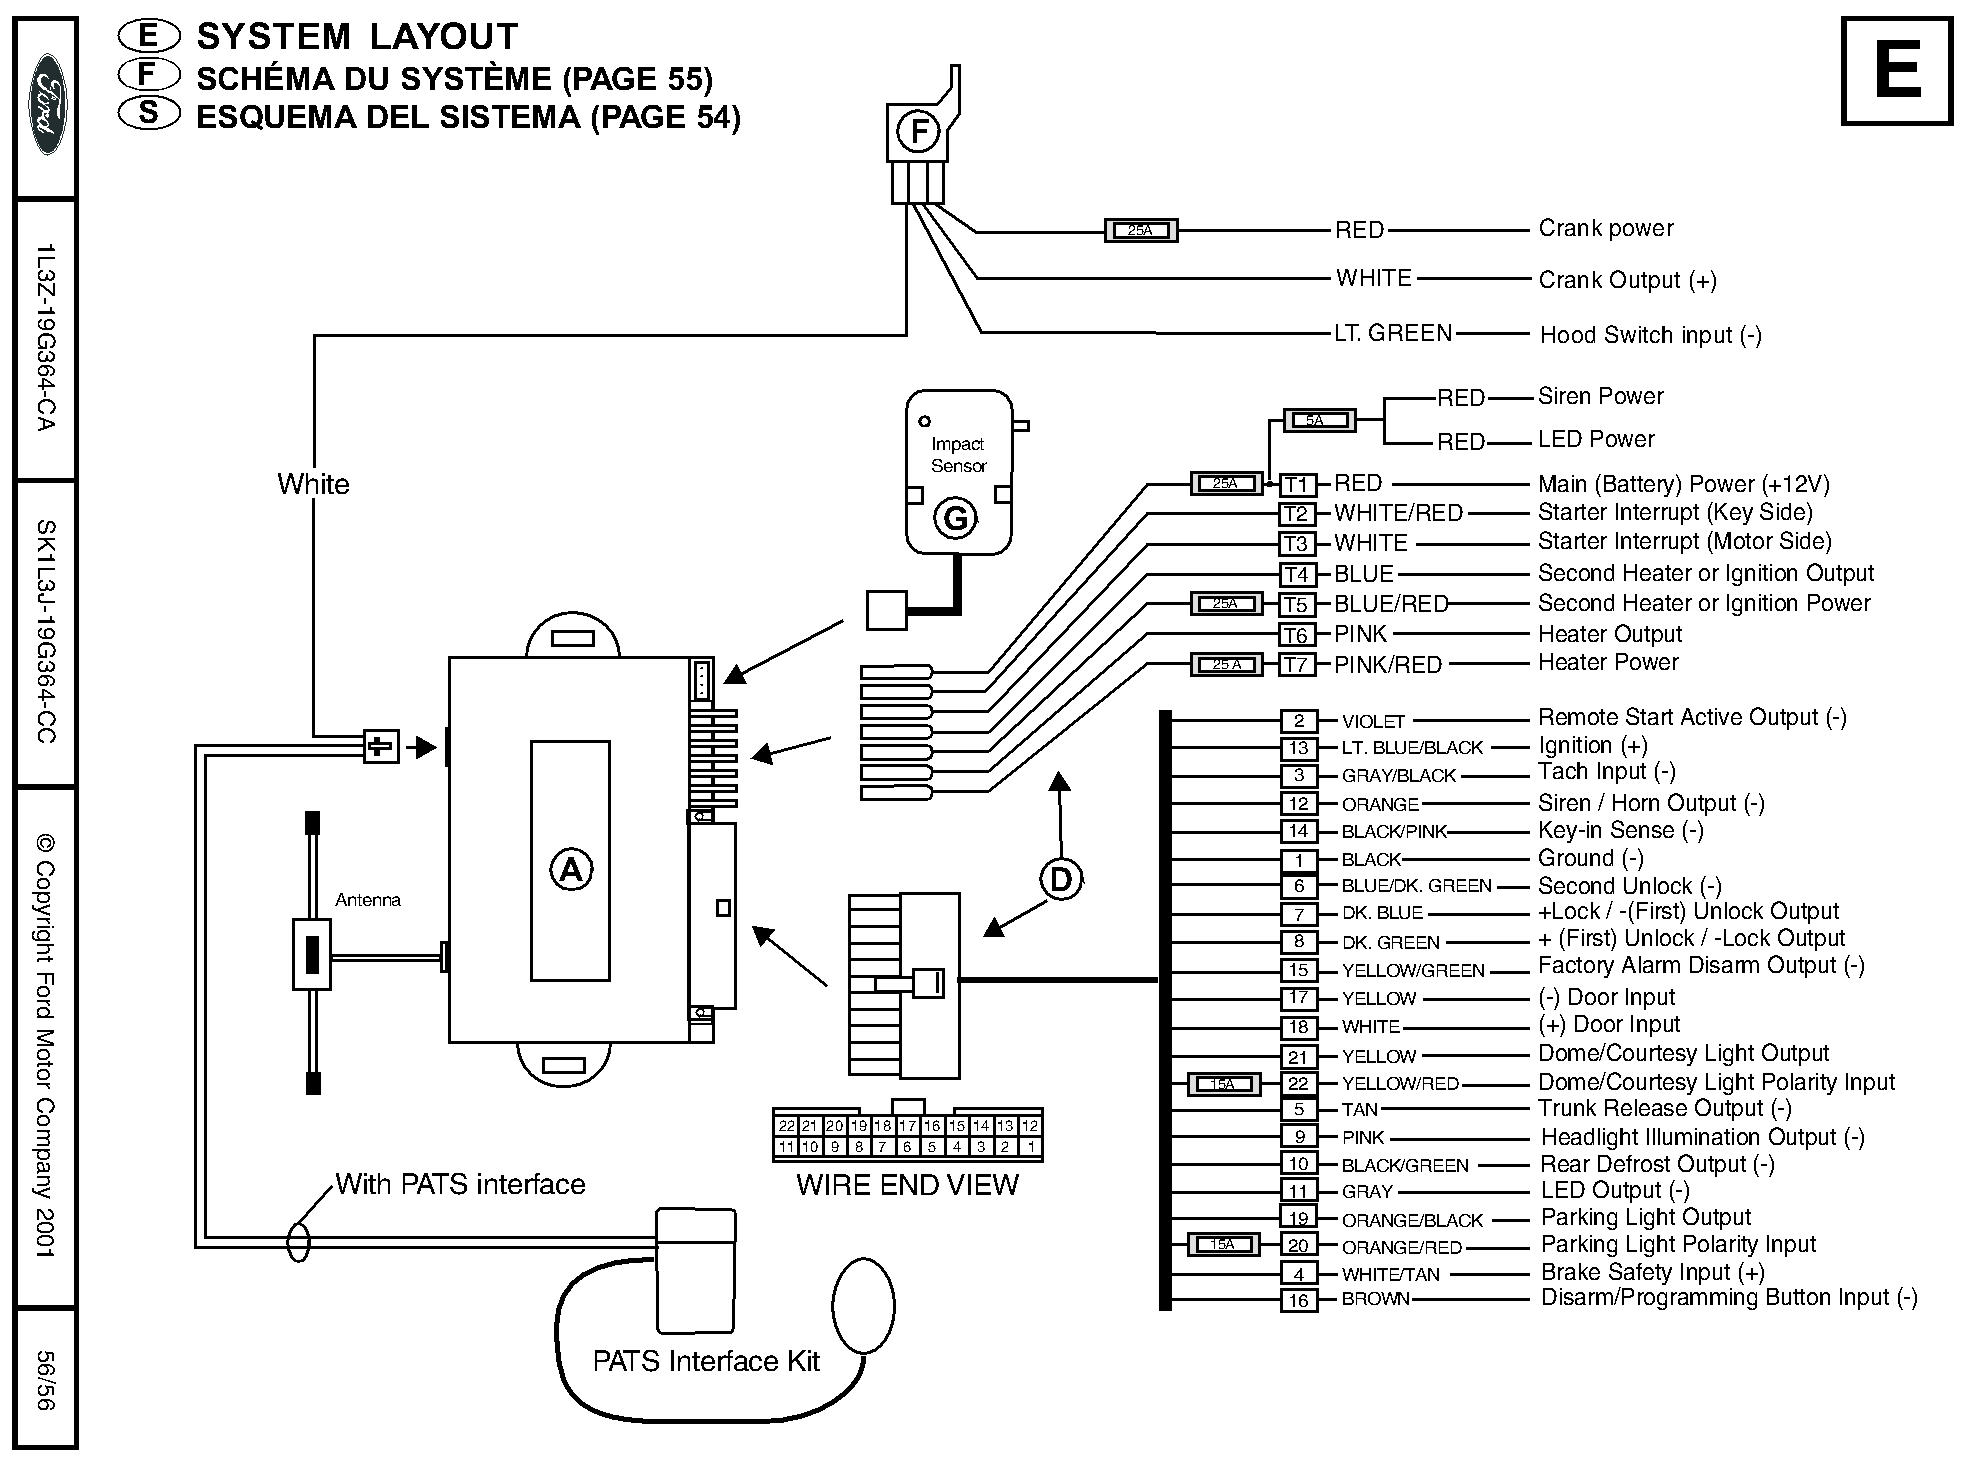 Smart Fortwo Wiring Diagram Pdf further Diy Home Security System Wiring Diagram also High Sensitive RF Wireless Smoke Detector and Fire Alarm Sensor for Smart Home 433MHZ as well Index 2 together with Door Bell Circuit Using IC. on smart smoke sensor alarm